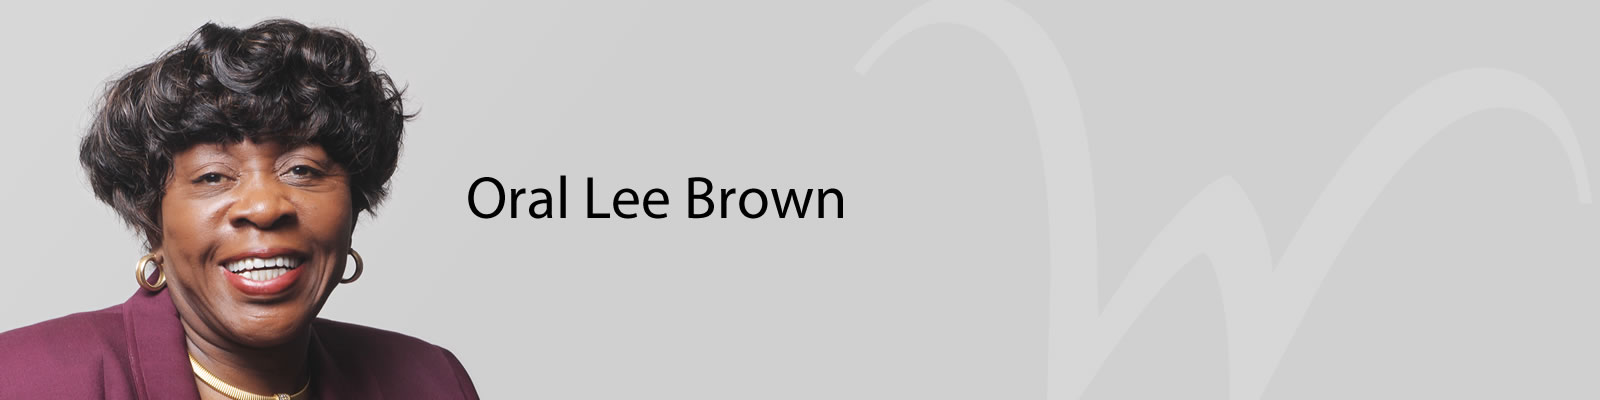 Image of Oral Lee Brown